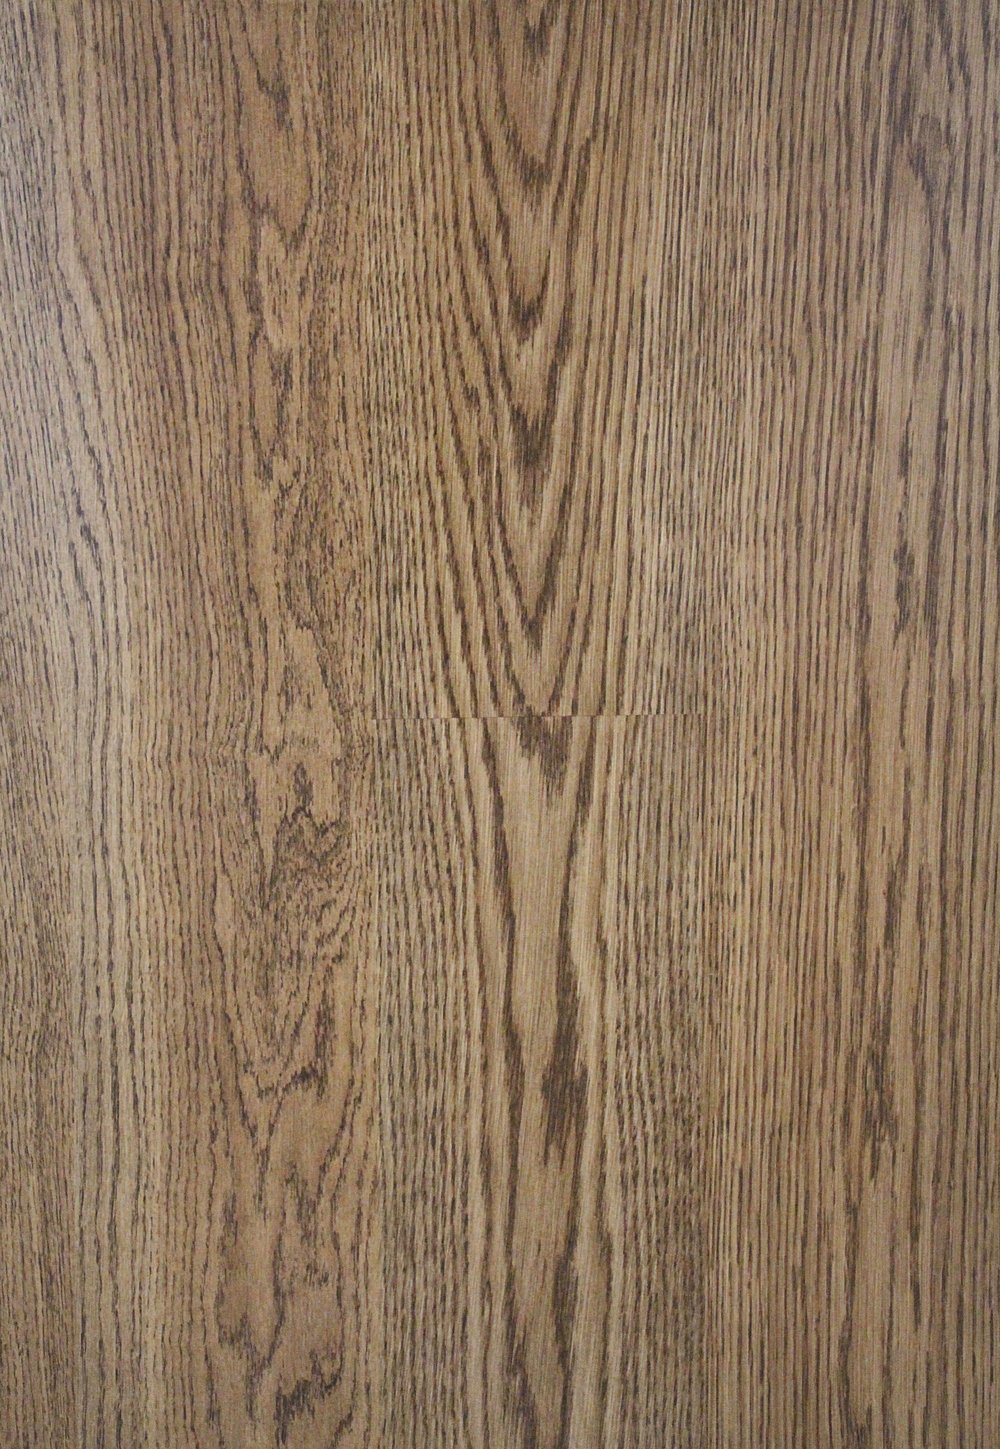 FSC OAK // SMOOTH / WALNUT STAIN